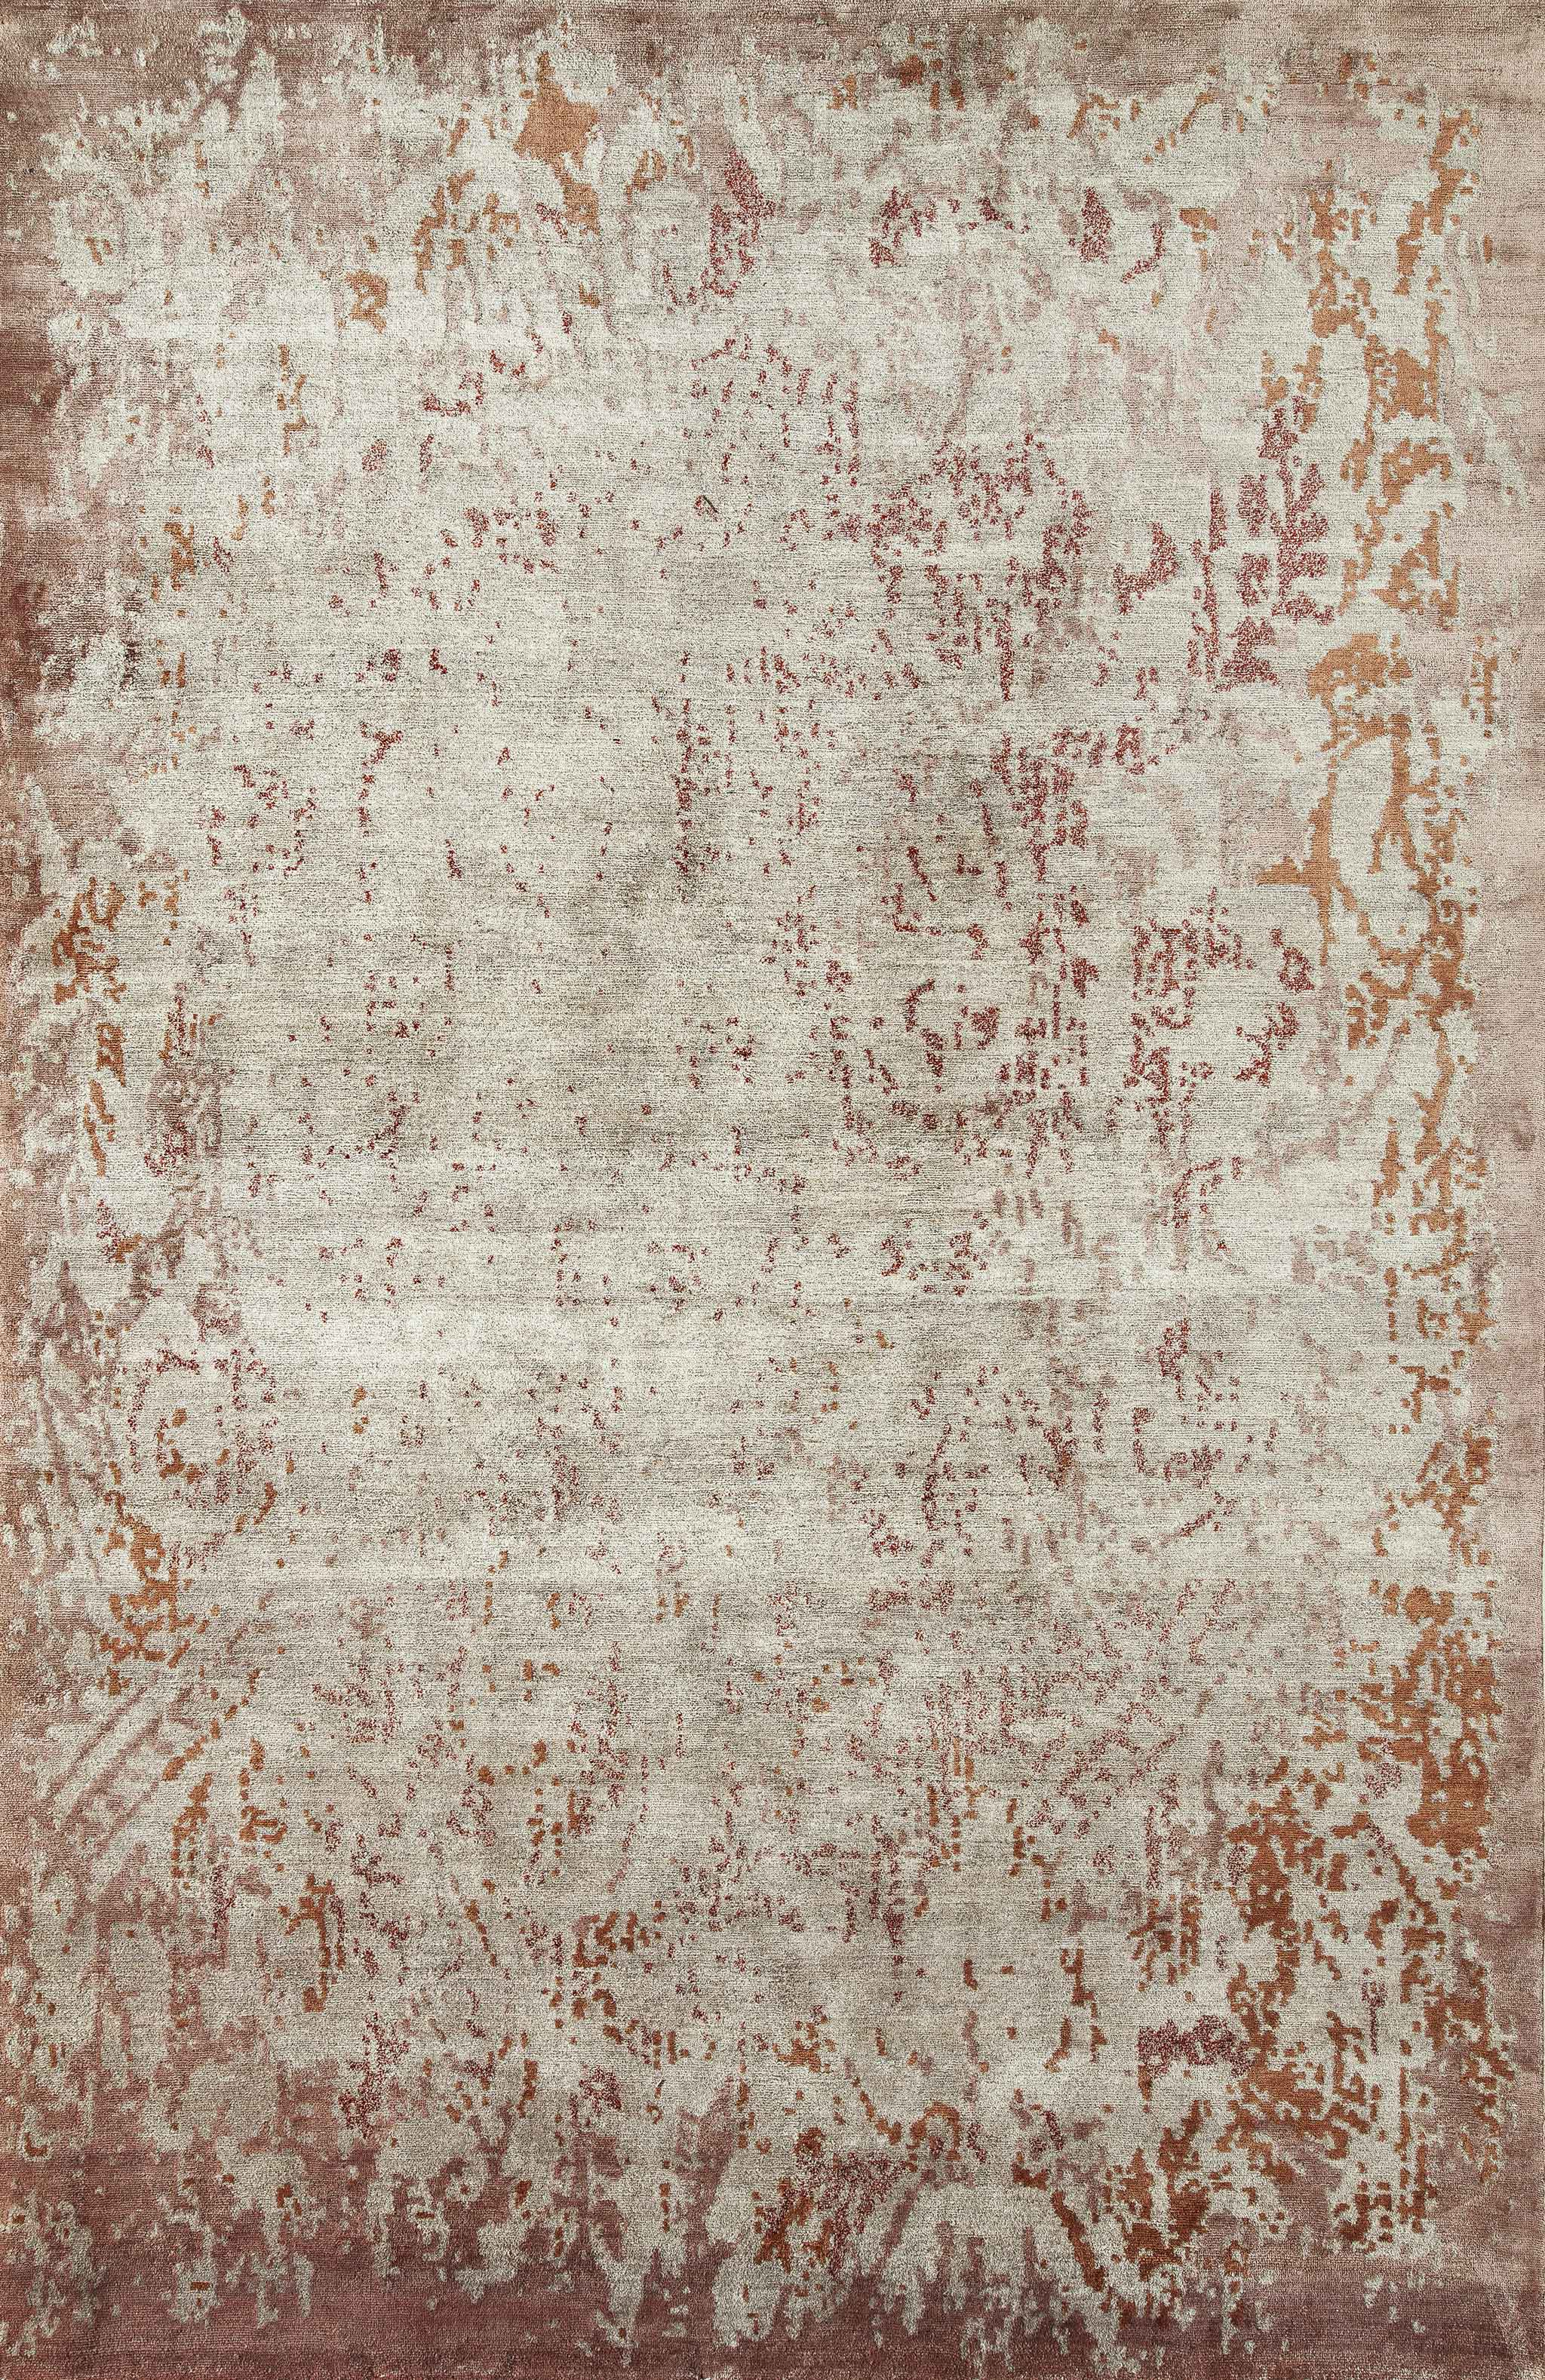 Un-Official Finalist, Best Transitional Design: Allure, Rug Art - www.rugart.nyc | Image courtesy of Rug Art/Domotex.